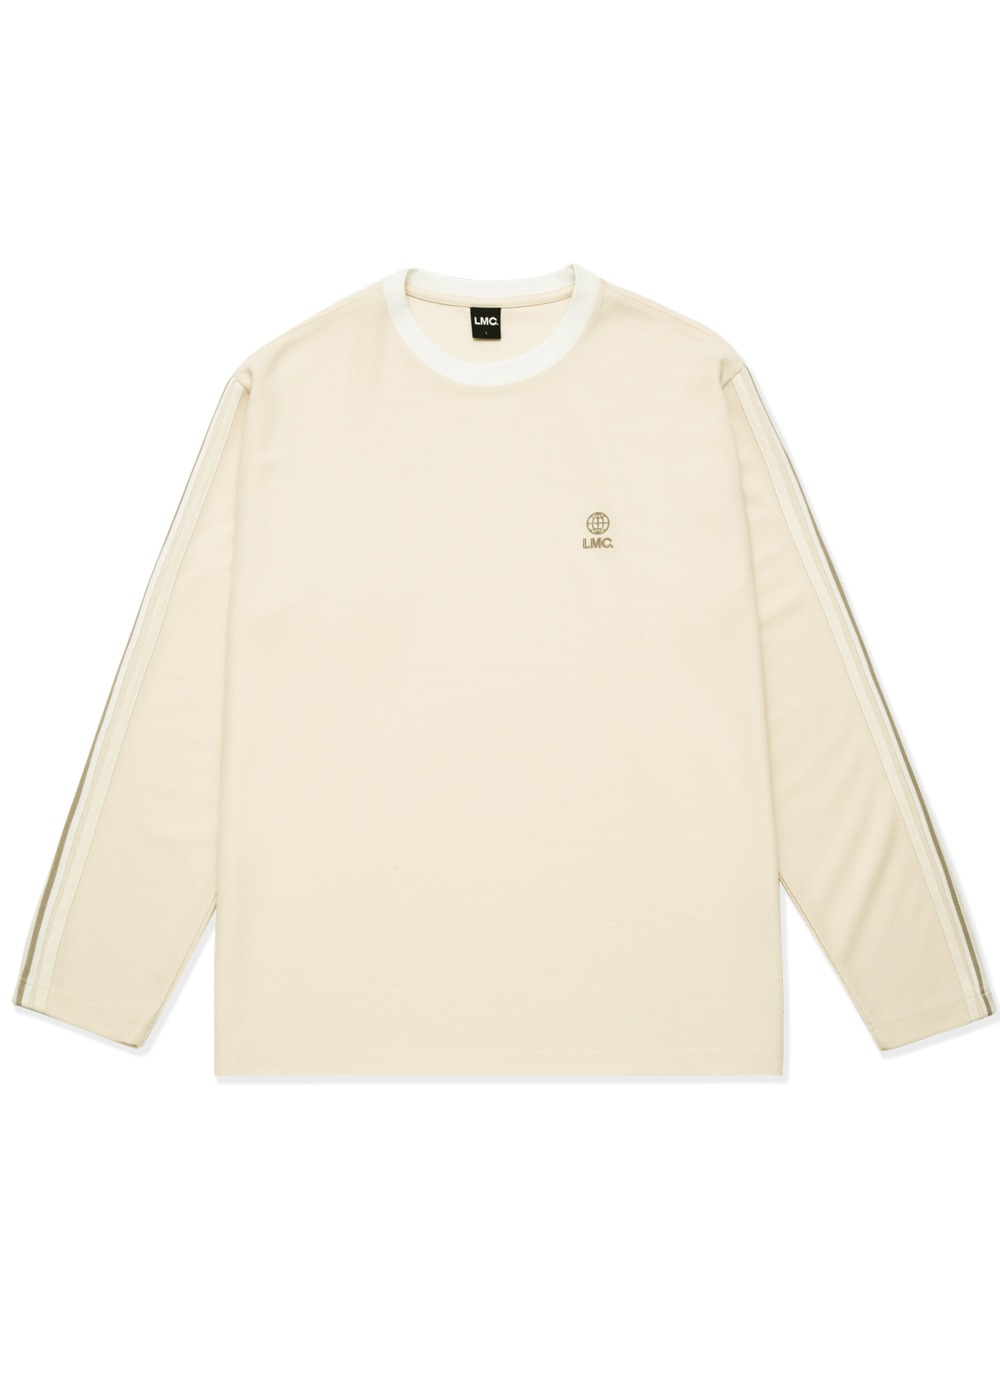 LMC SIDE STRIPED JERSEY LONG SLV TEE cream